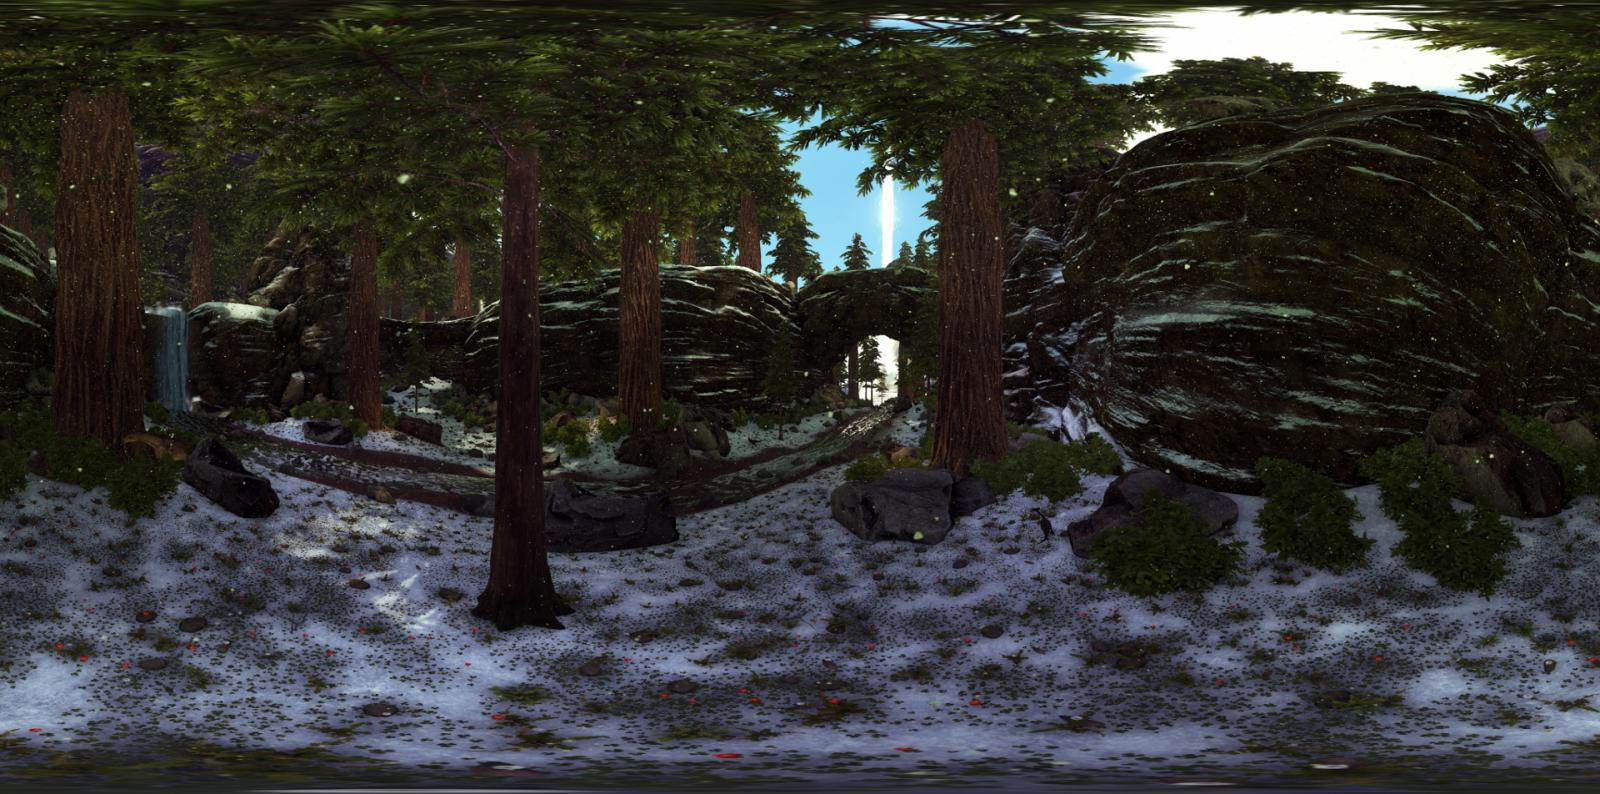 large.5882e6efc1cd2_FataL1ty-ArchwayPath-Panoramic360Stereoscopic3Dsta.jpg